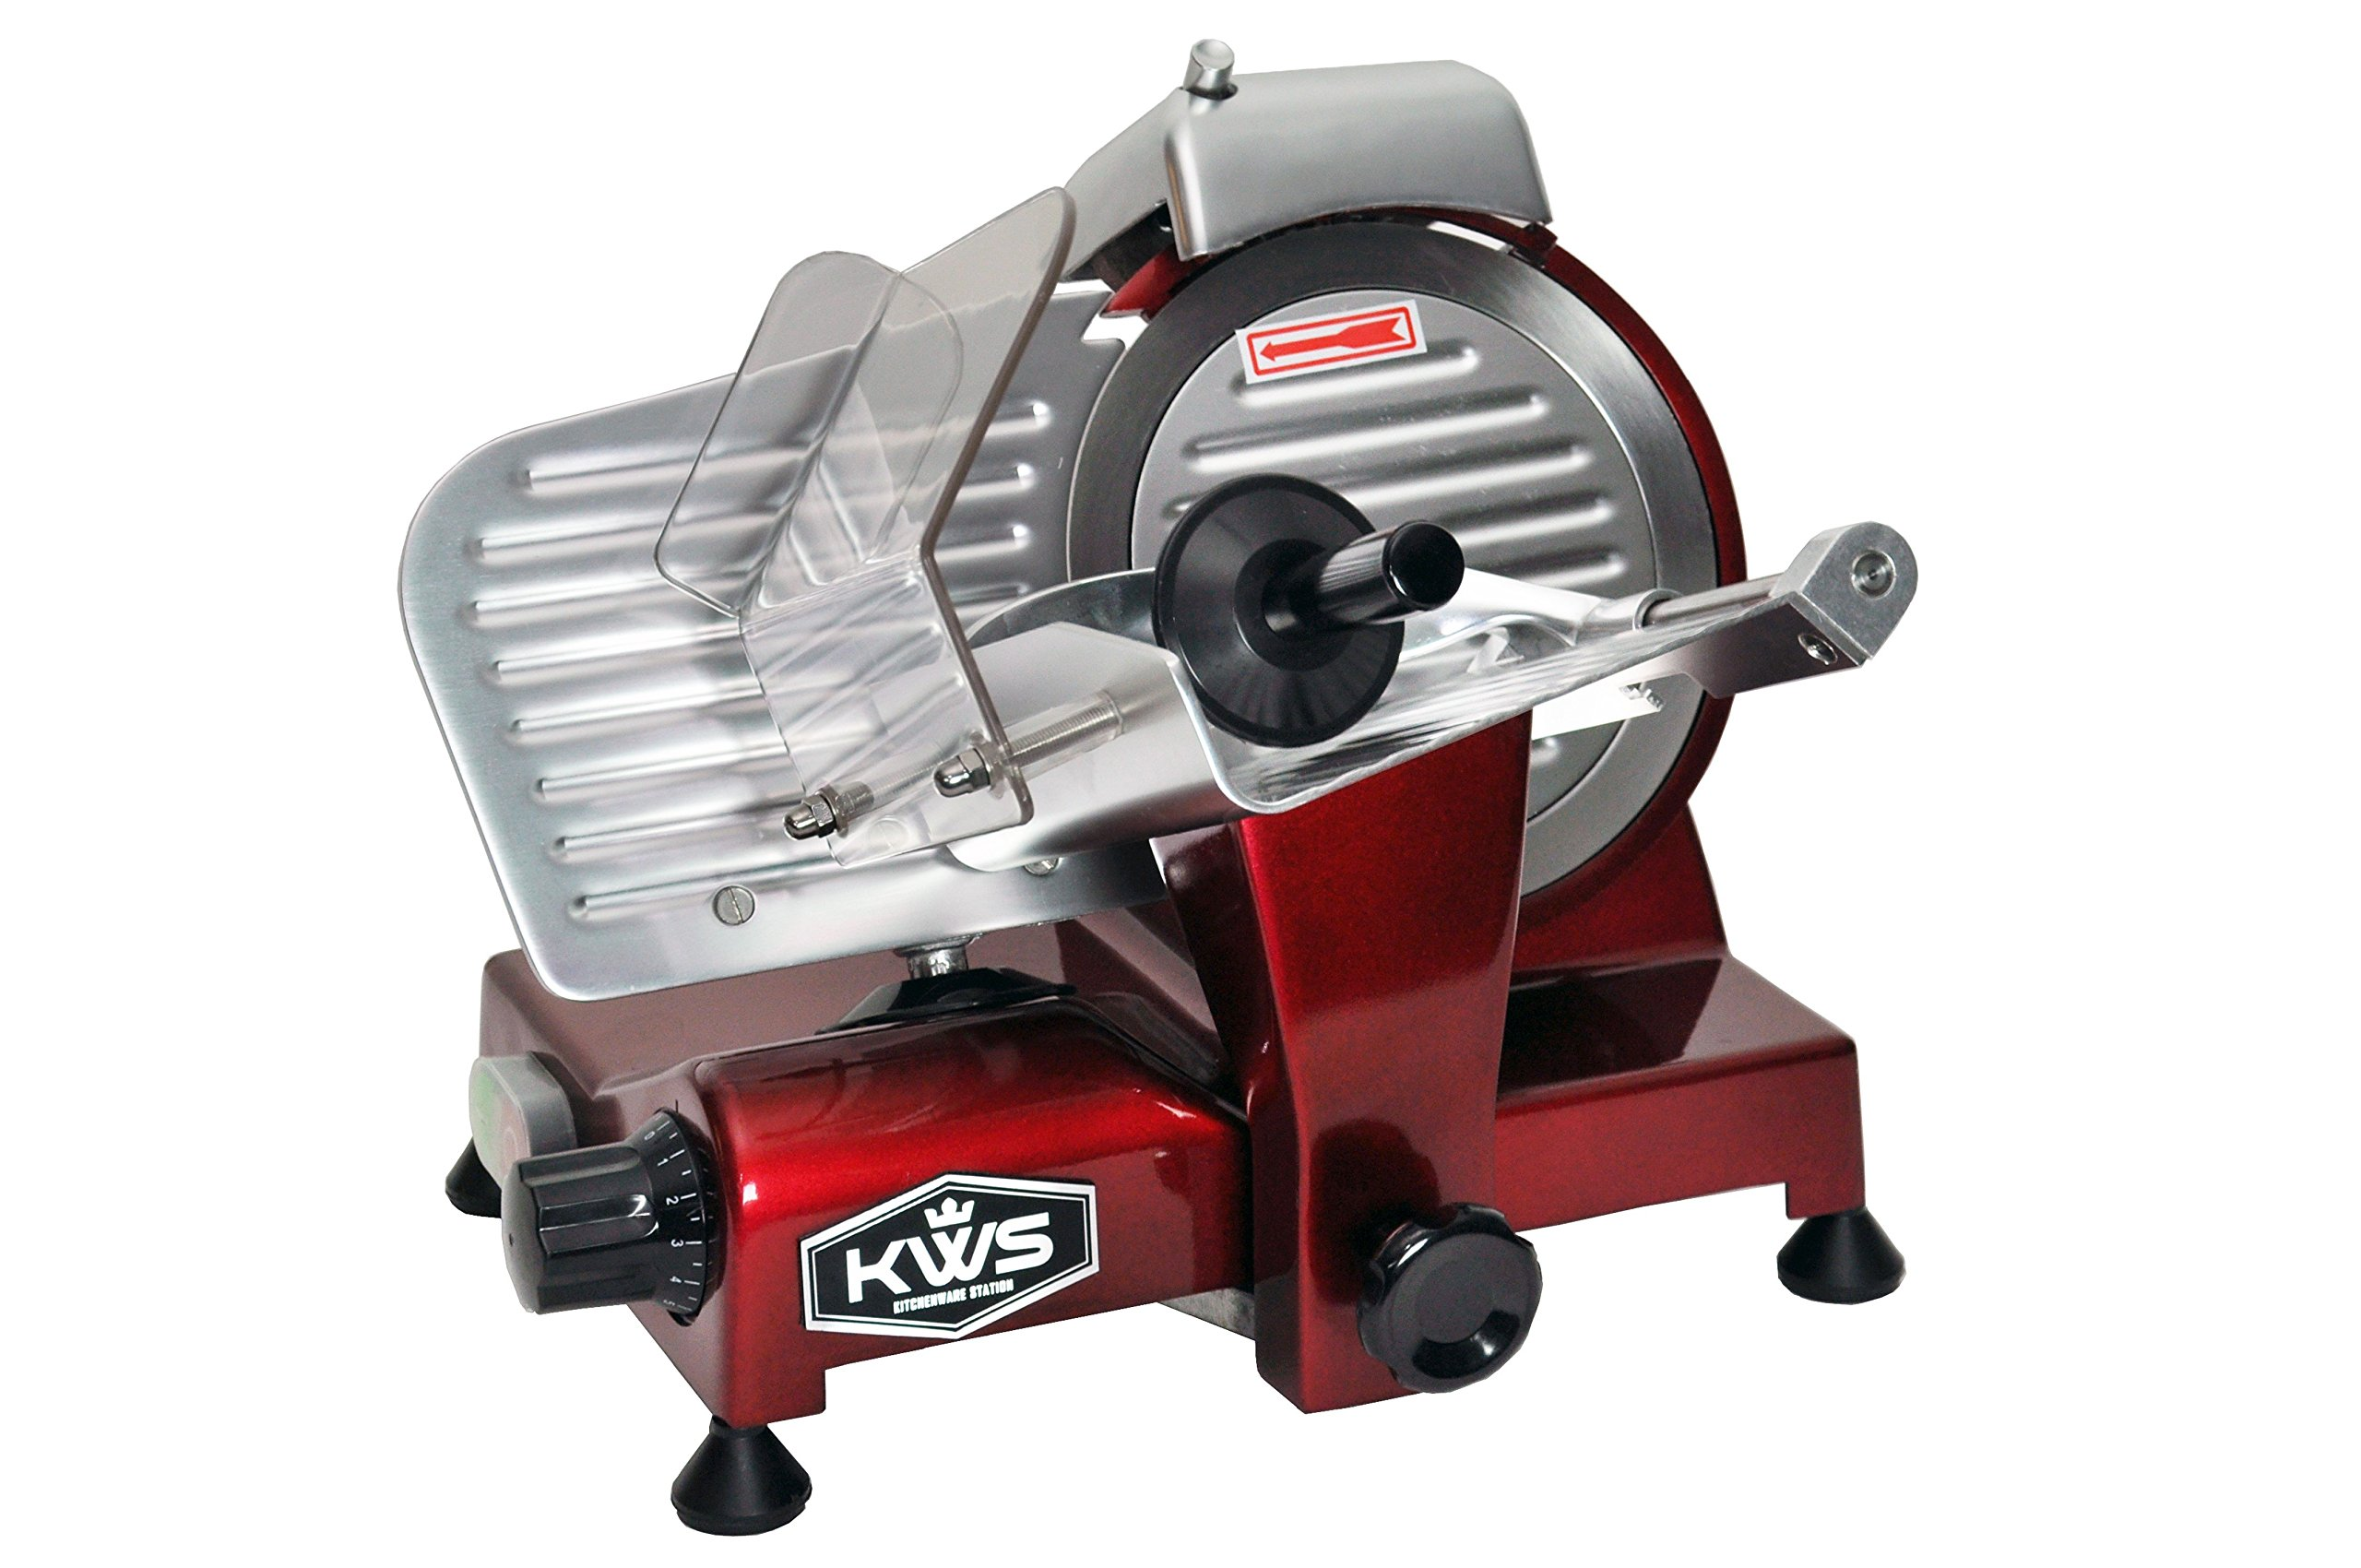 Home meat slicer